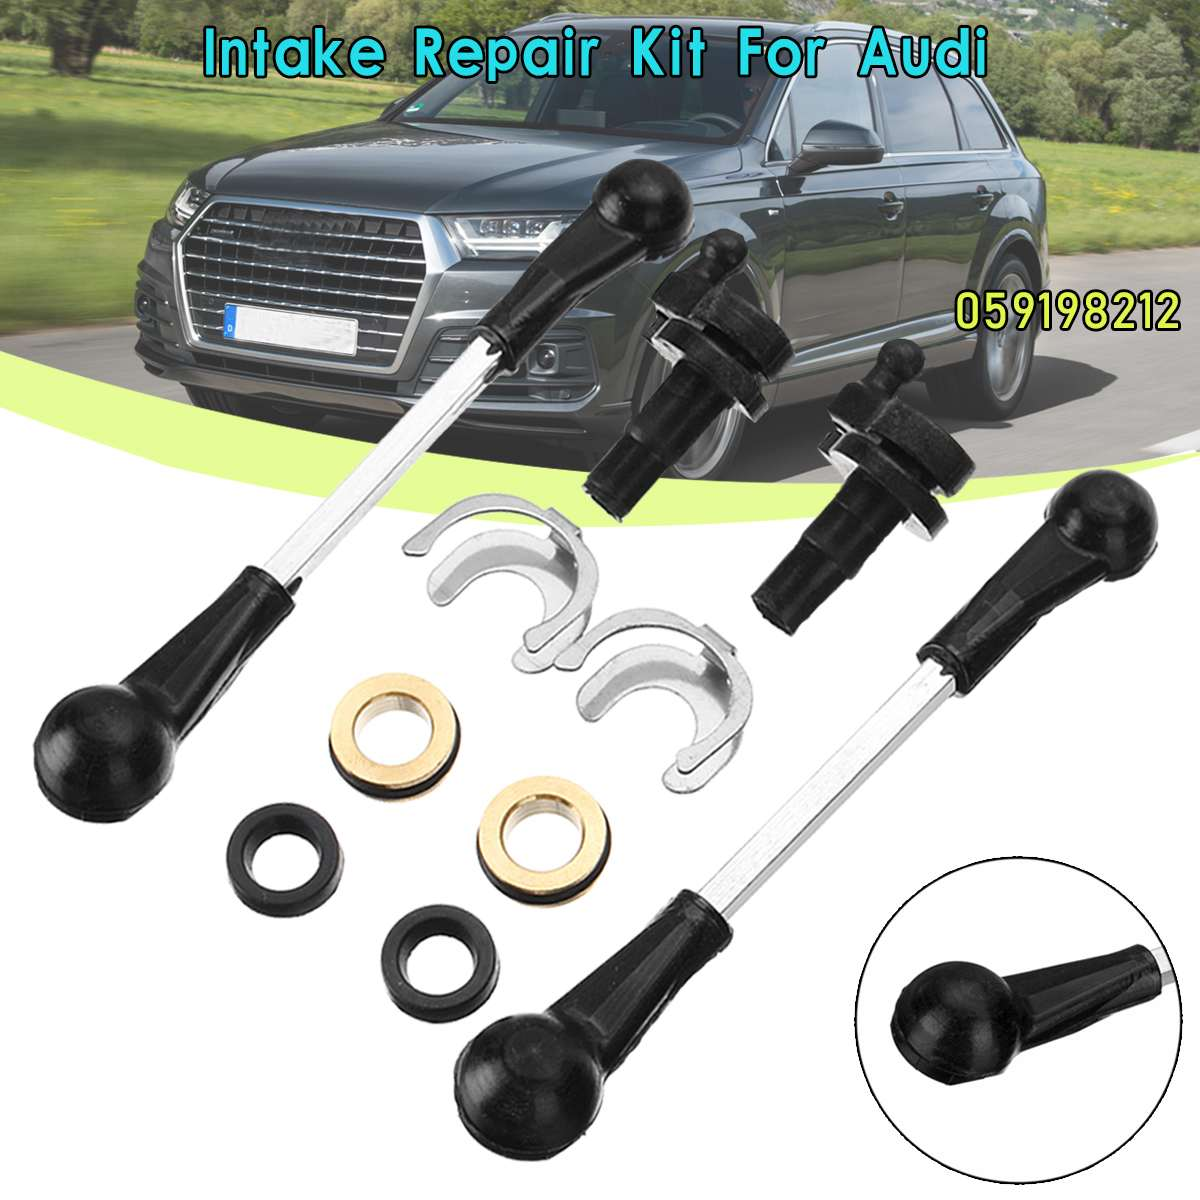 1 Set Intake Manifold Swirl Flap Repair Kit For Audi A6 A7 A8 Q7 2.7 3.0 TDI 059198212 059129086 2.7 3.0 TDI